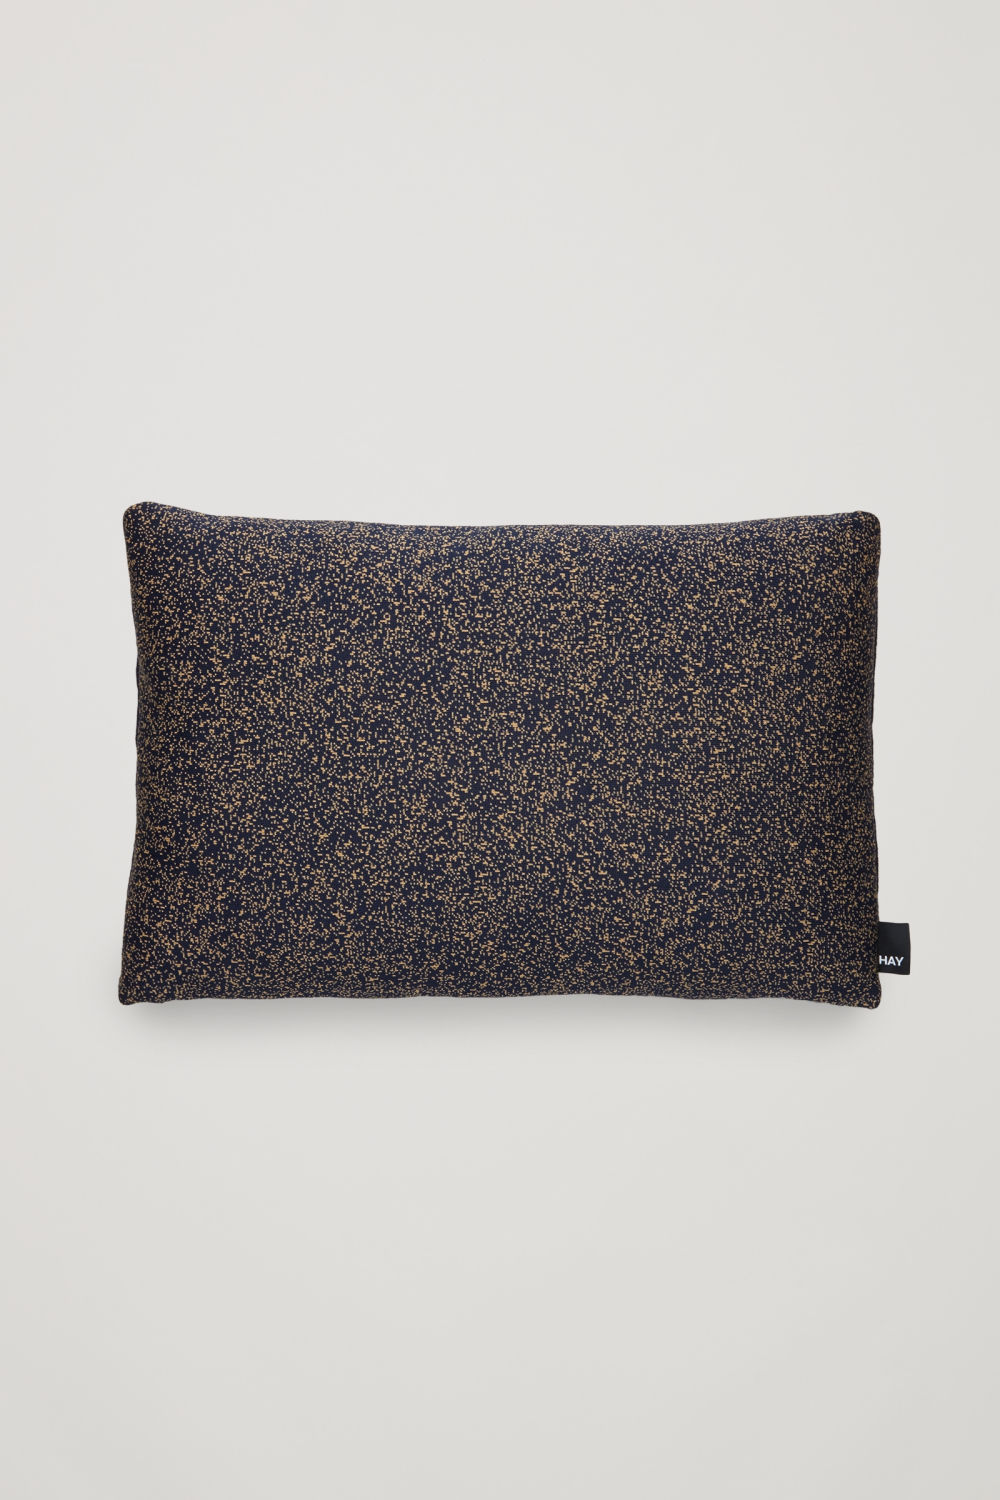 HAY ECLECTIC RECTANGLE CUSHION